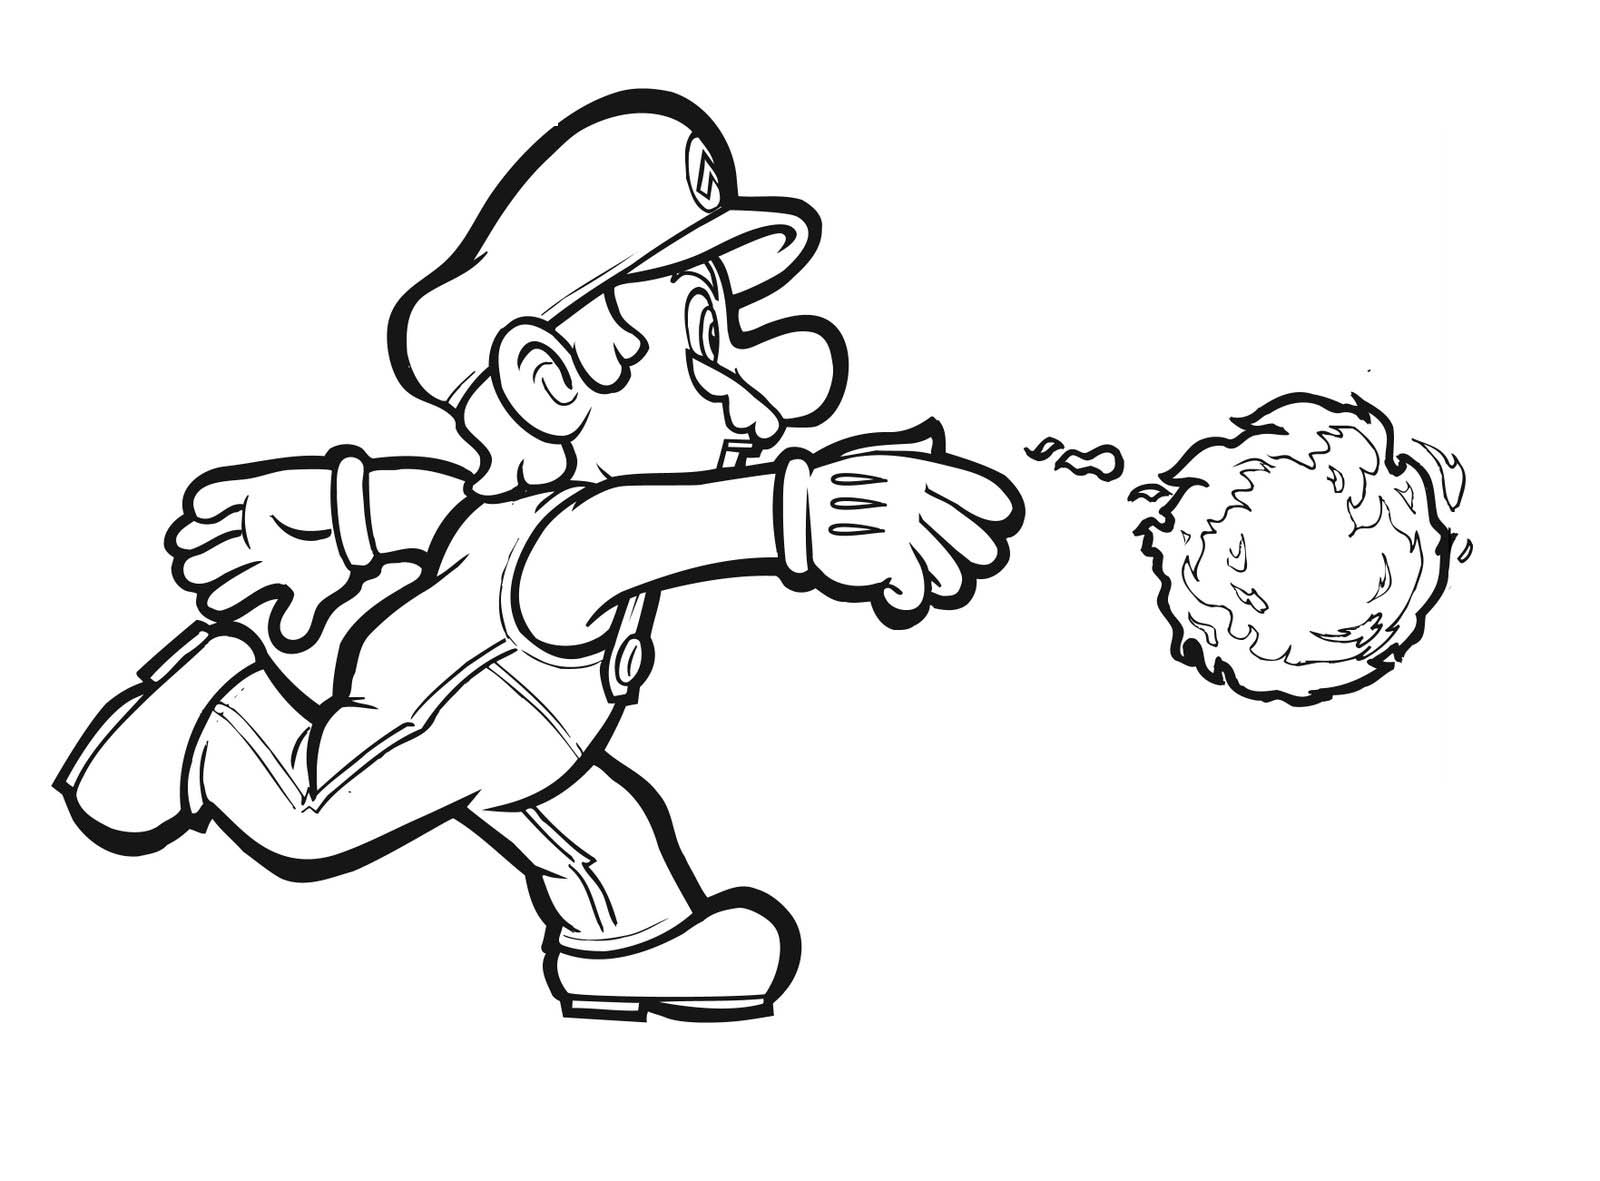 Adult Cute Mario Coloring Pages To Print Gallery Images cute mario bros coloring pages to download and print for free gallery images